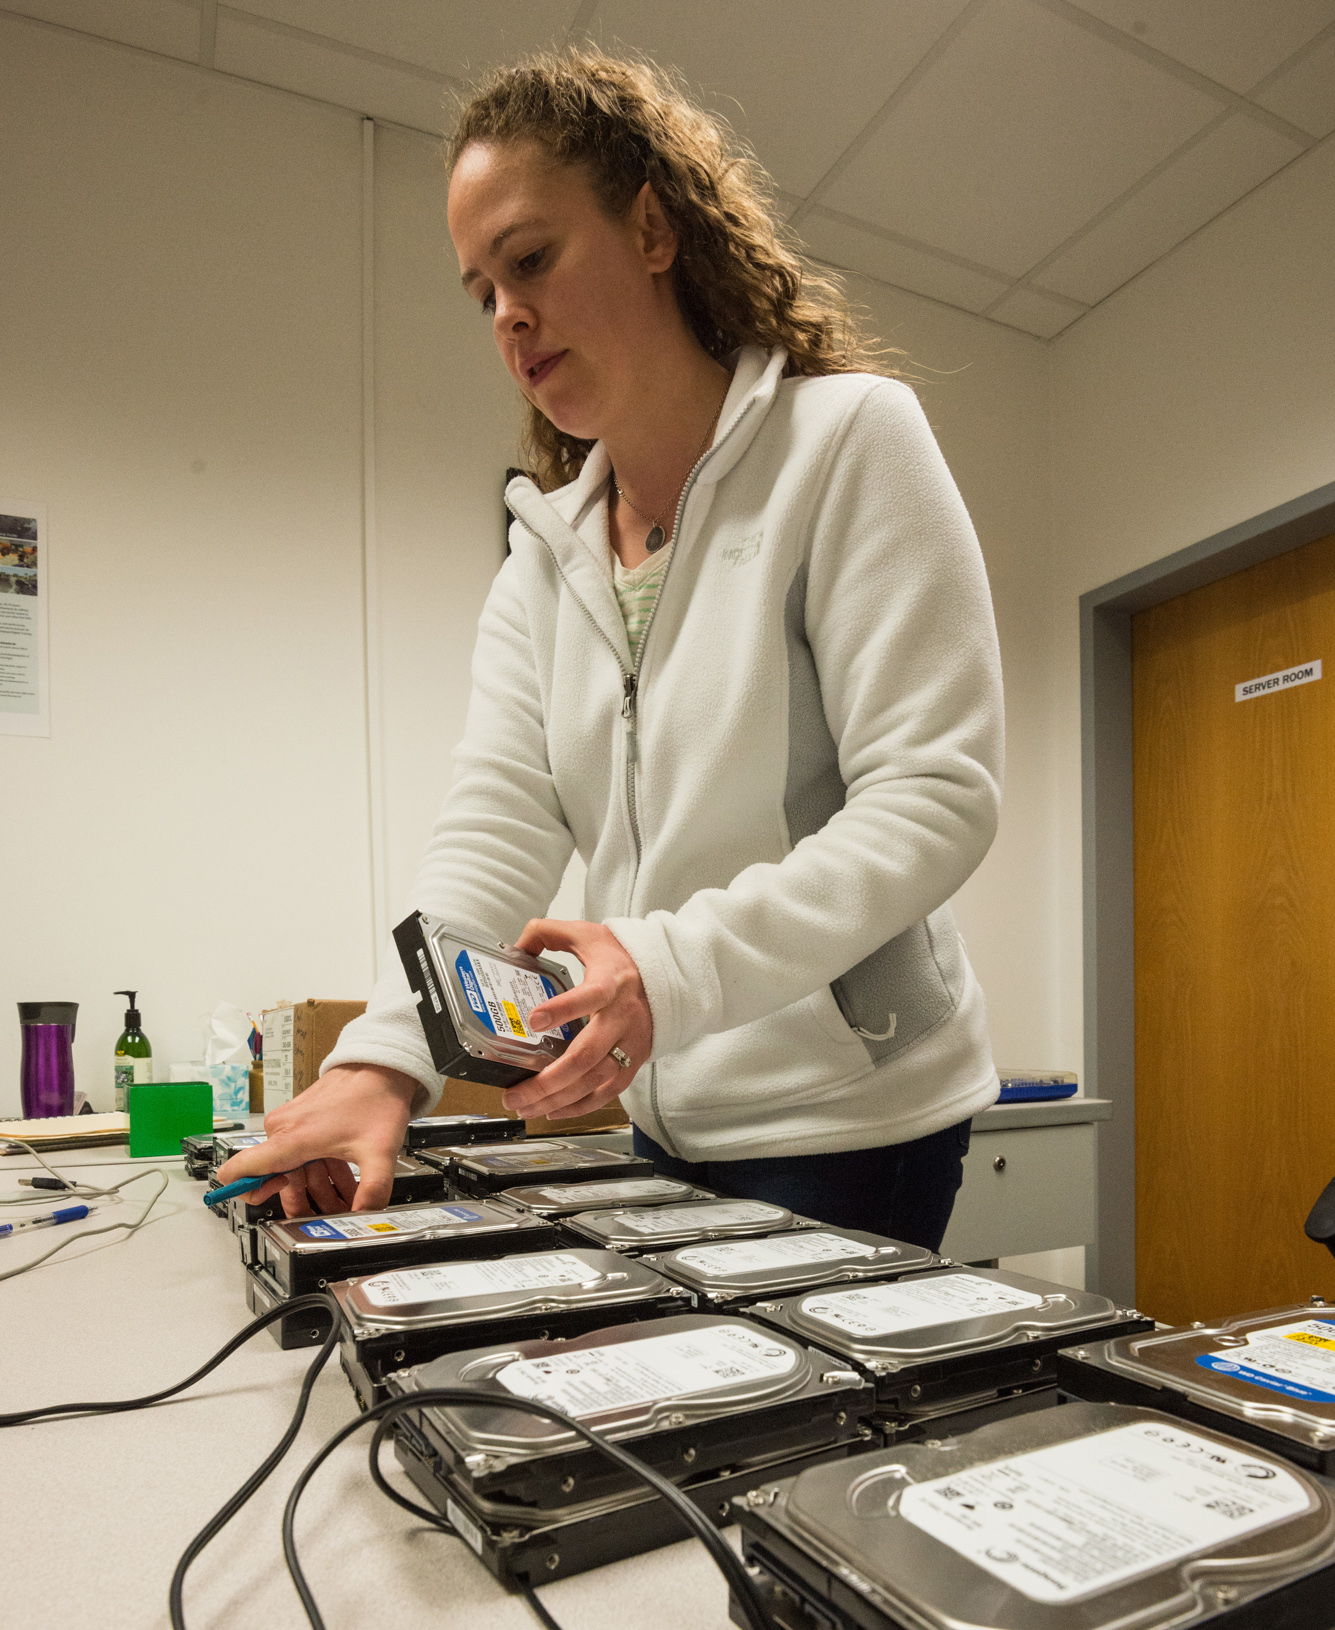 Training Support Center Benelux supply technician Stephanie Pippenger sorts hard drives in October 2016 as U.S. government employees and Belgian contractors deploy new computers in the Digital Training Facility at Chièvres Air Base, Belgium. Almost $100,000 worth of equipment was installed in the Chièvres facility. (U.S. Army photo by Visual Information Specialist Pierre-Etienne Courtejoie)